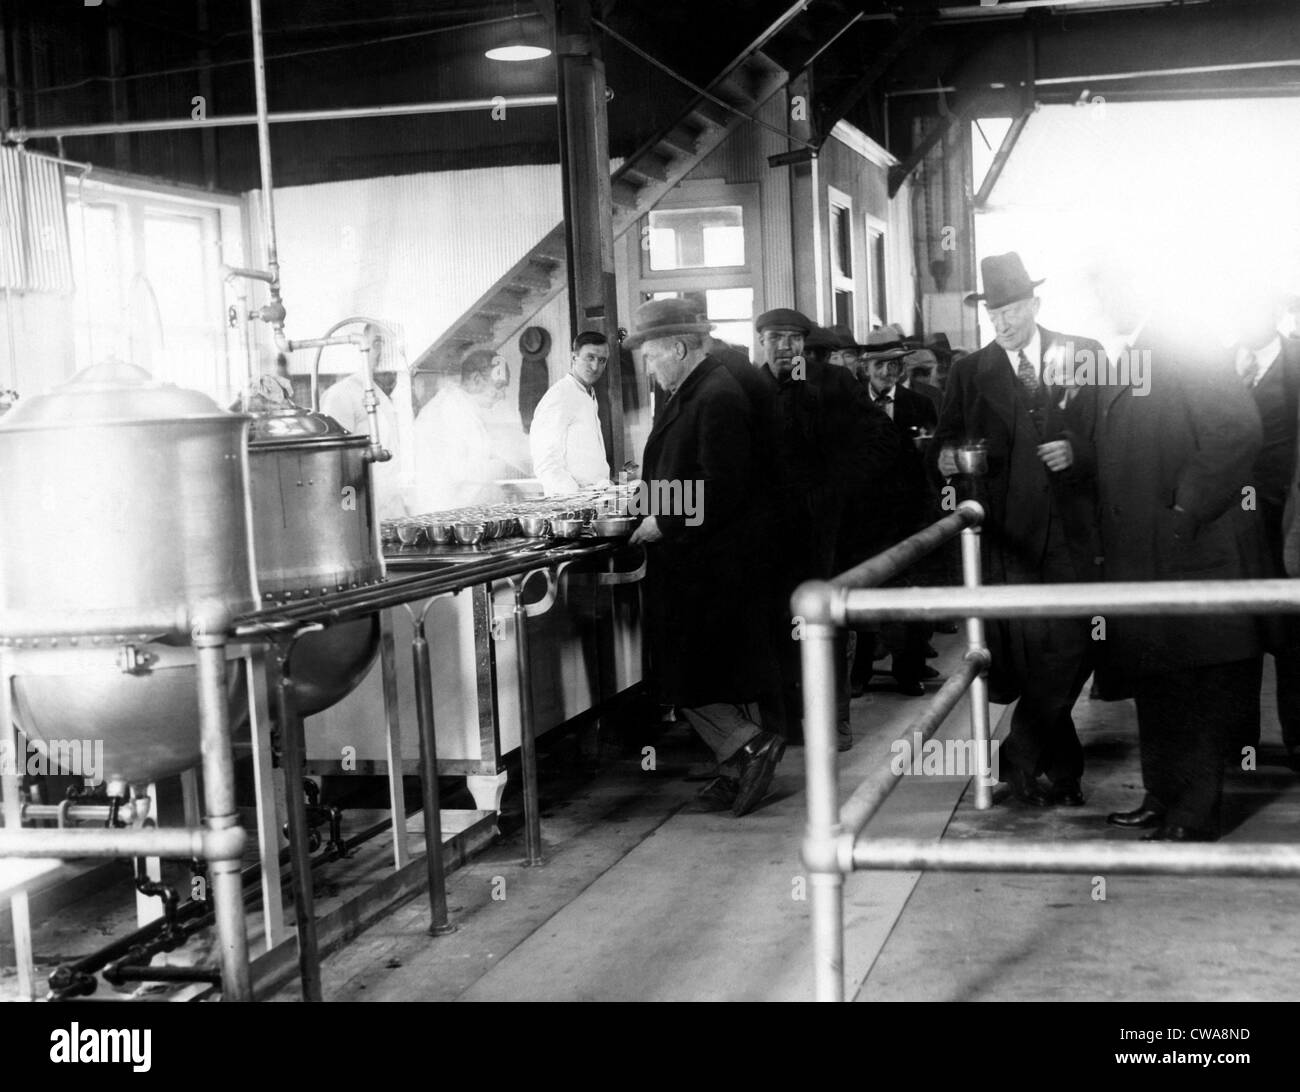 Men wait in line for food at a municipal lodging house. Police Commissioner Edward P. Mulrooney stands with coffee - Stock Image